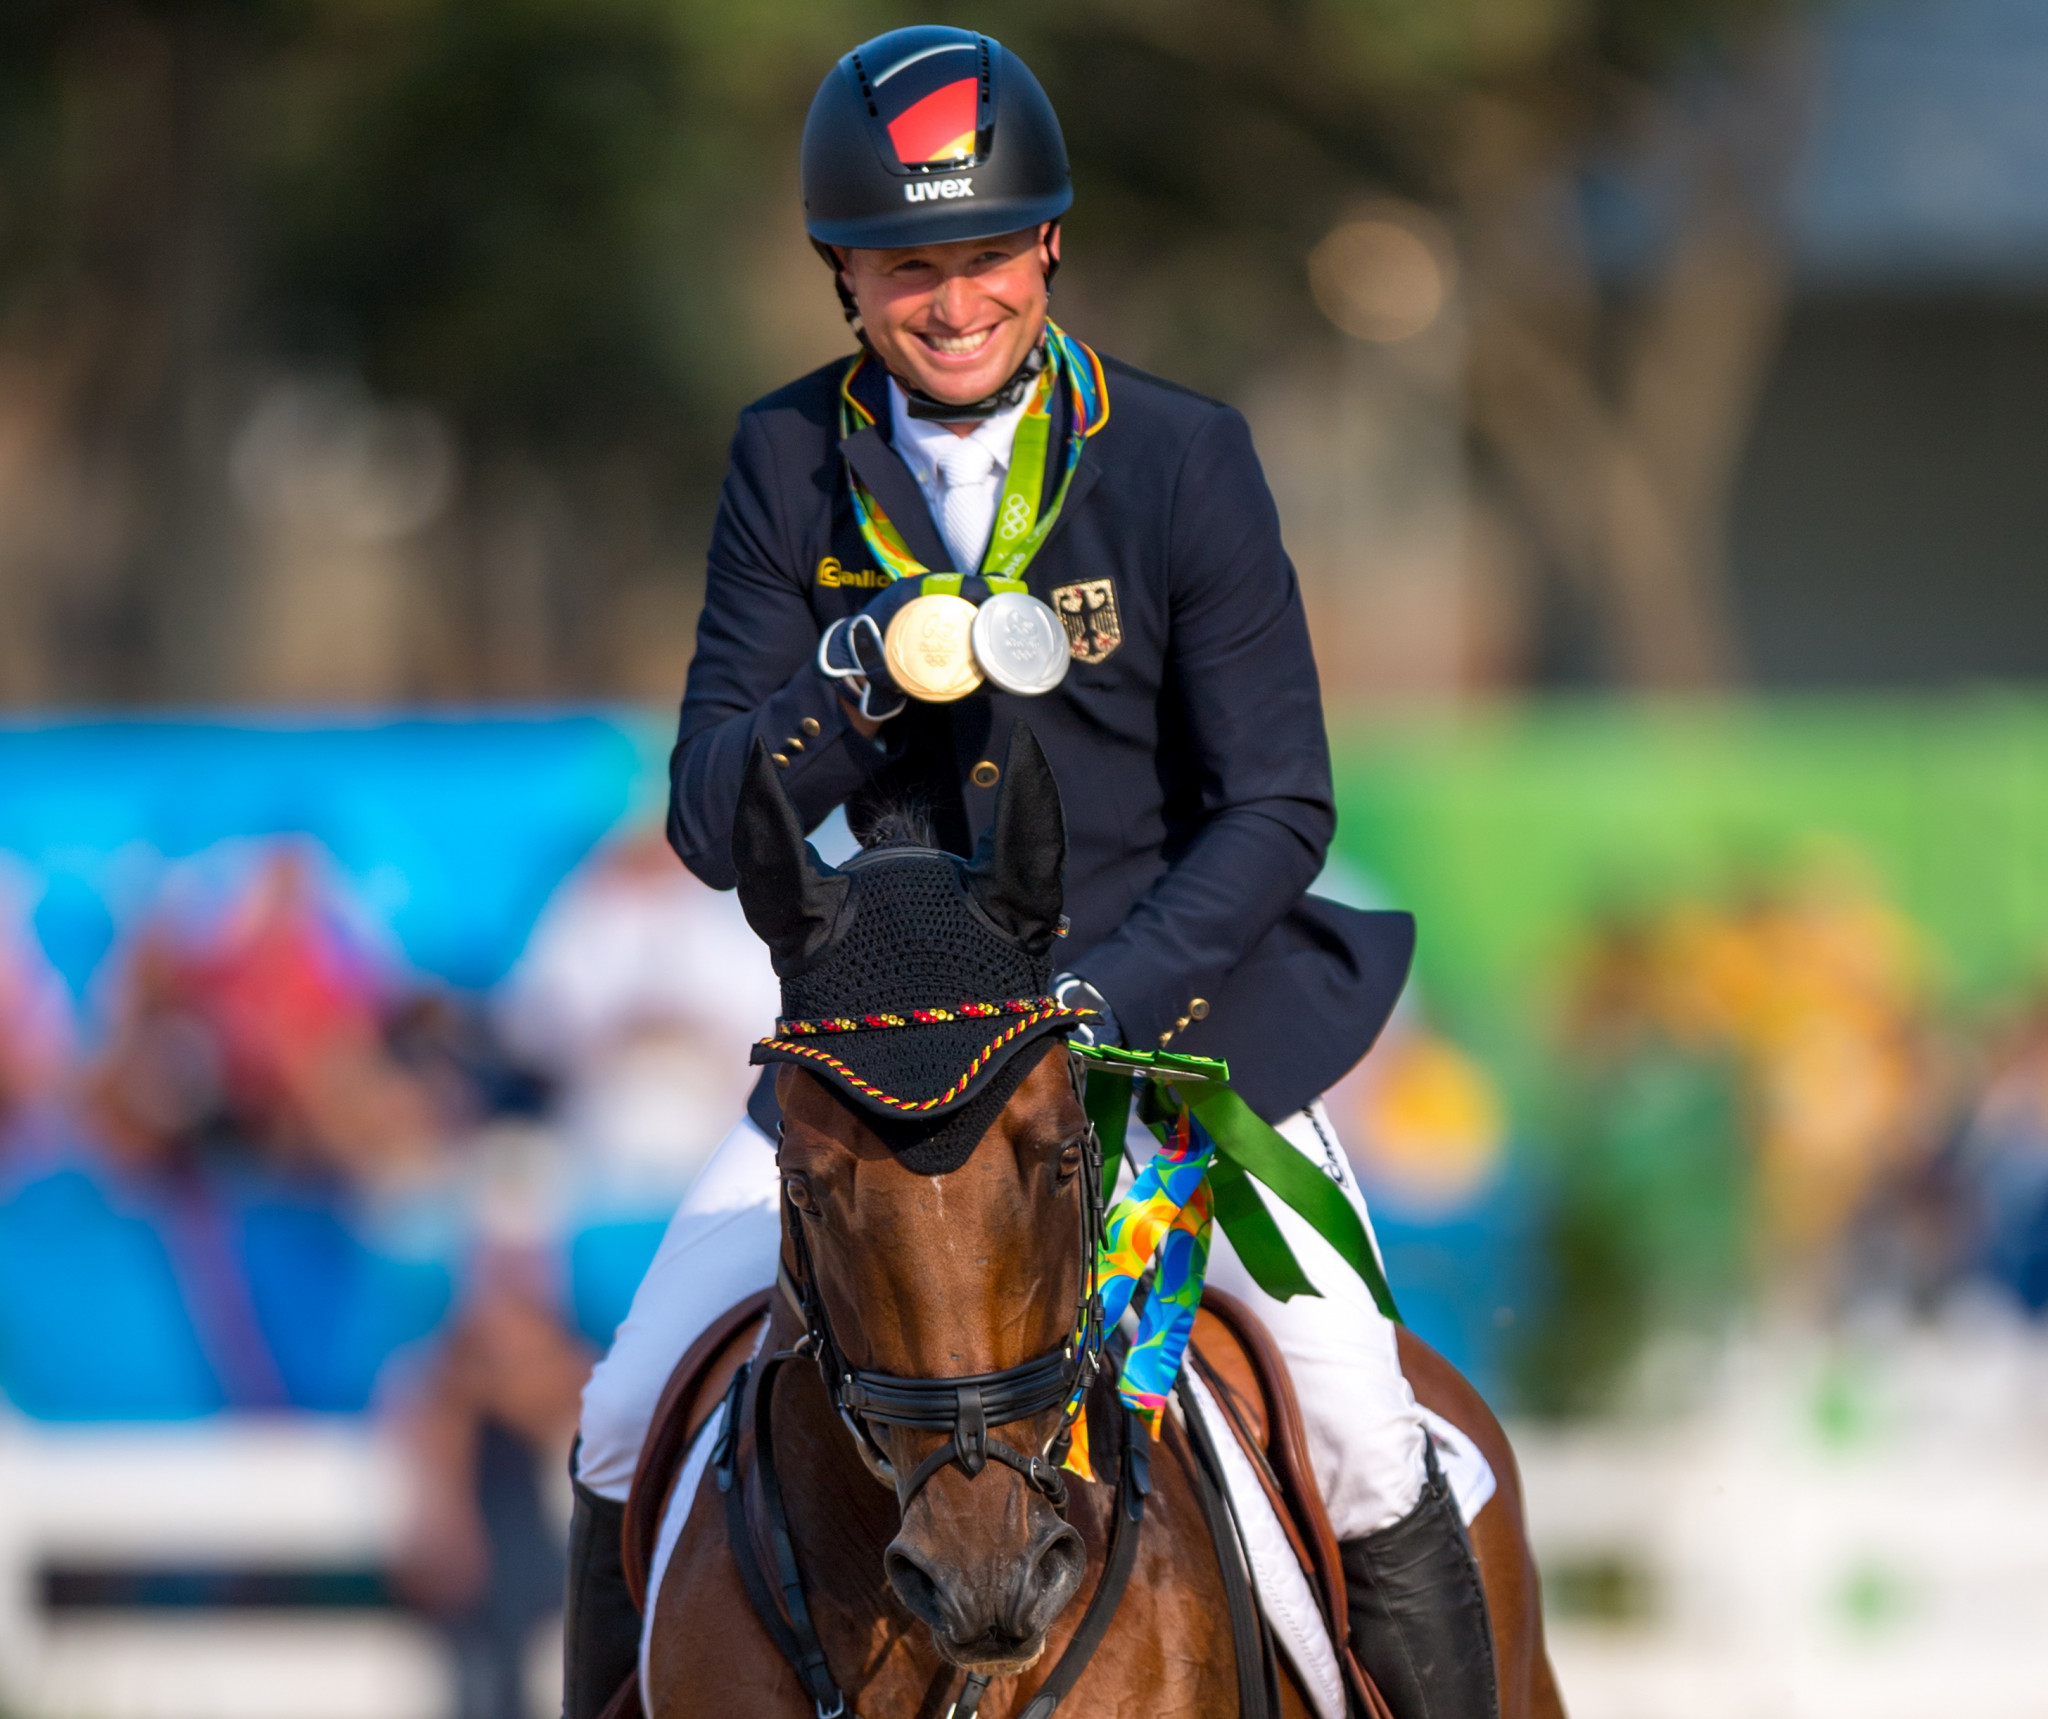 Jung leads star field for equestrian Tokyo 2020 test event